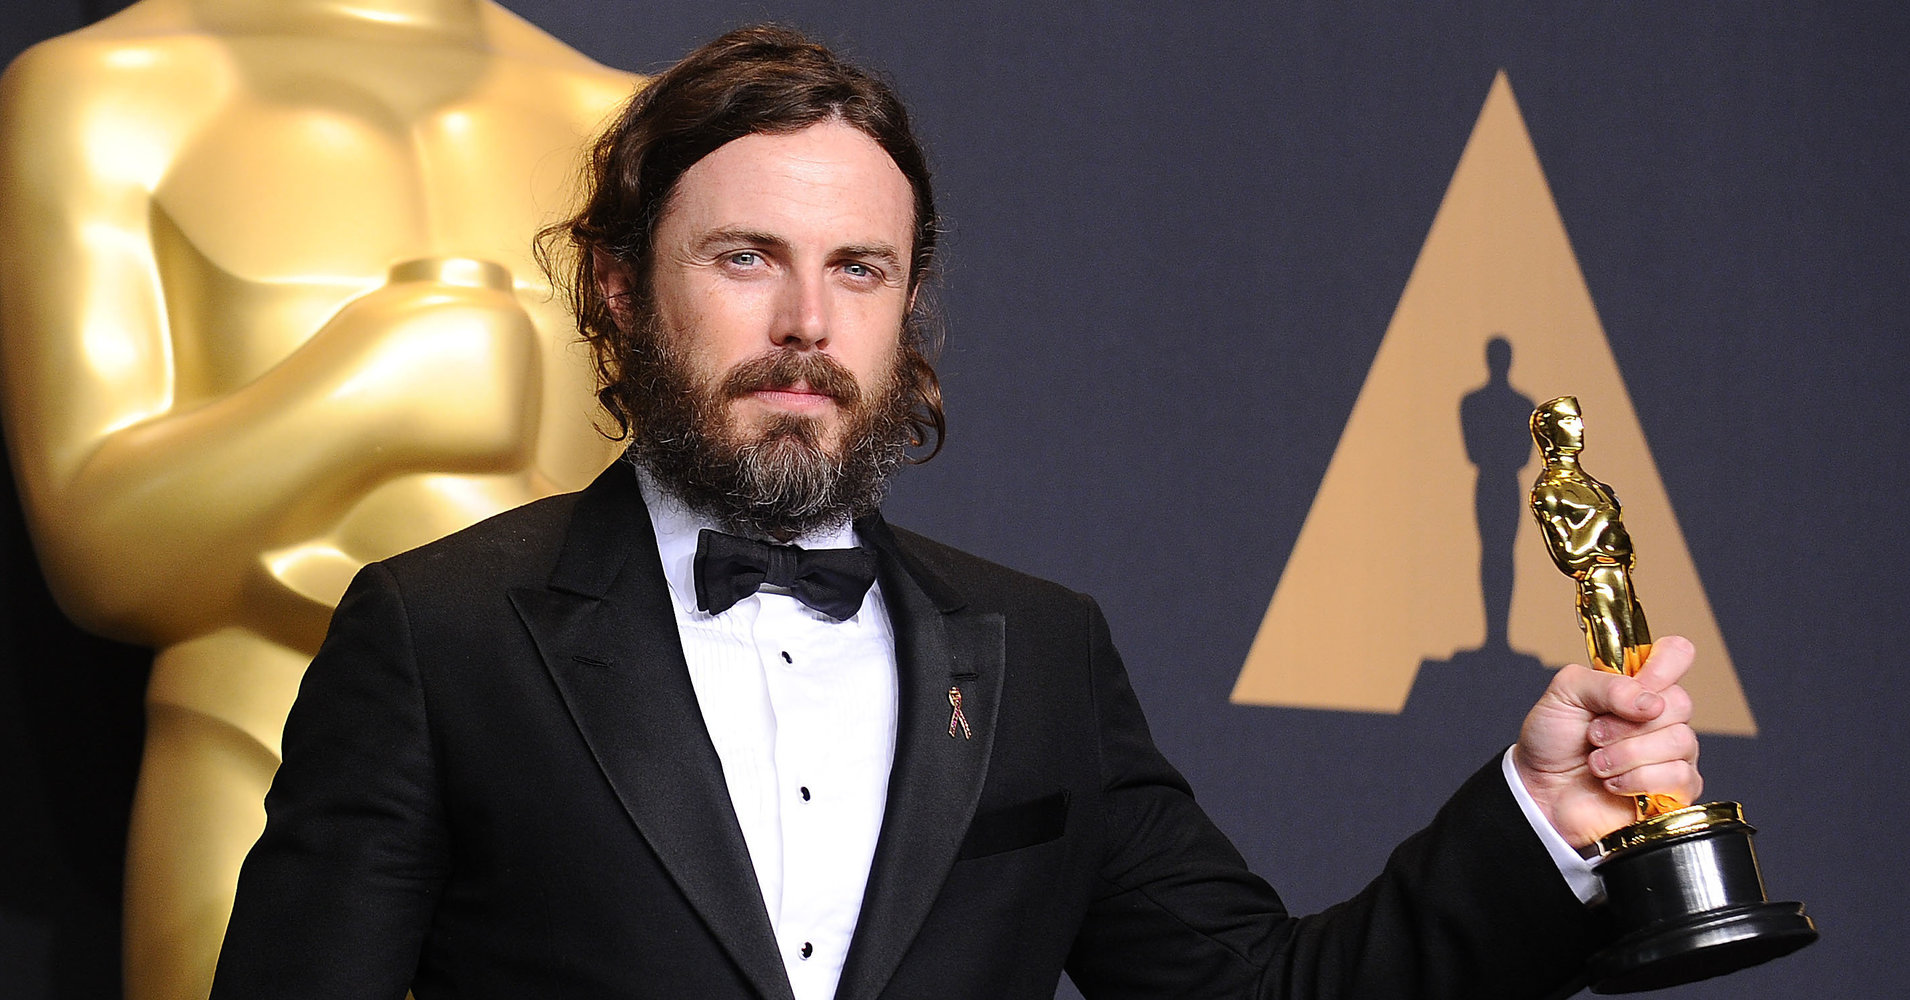 Casey Affleck Is Skipping The Oscars Amid #MeToo Backlash